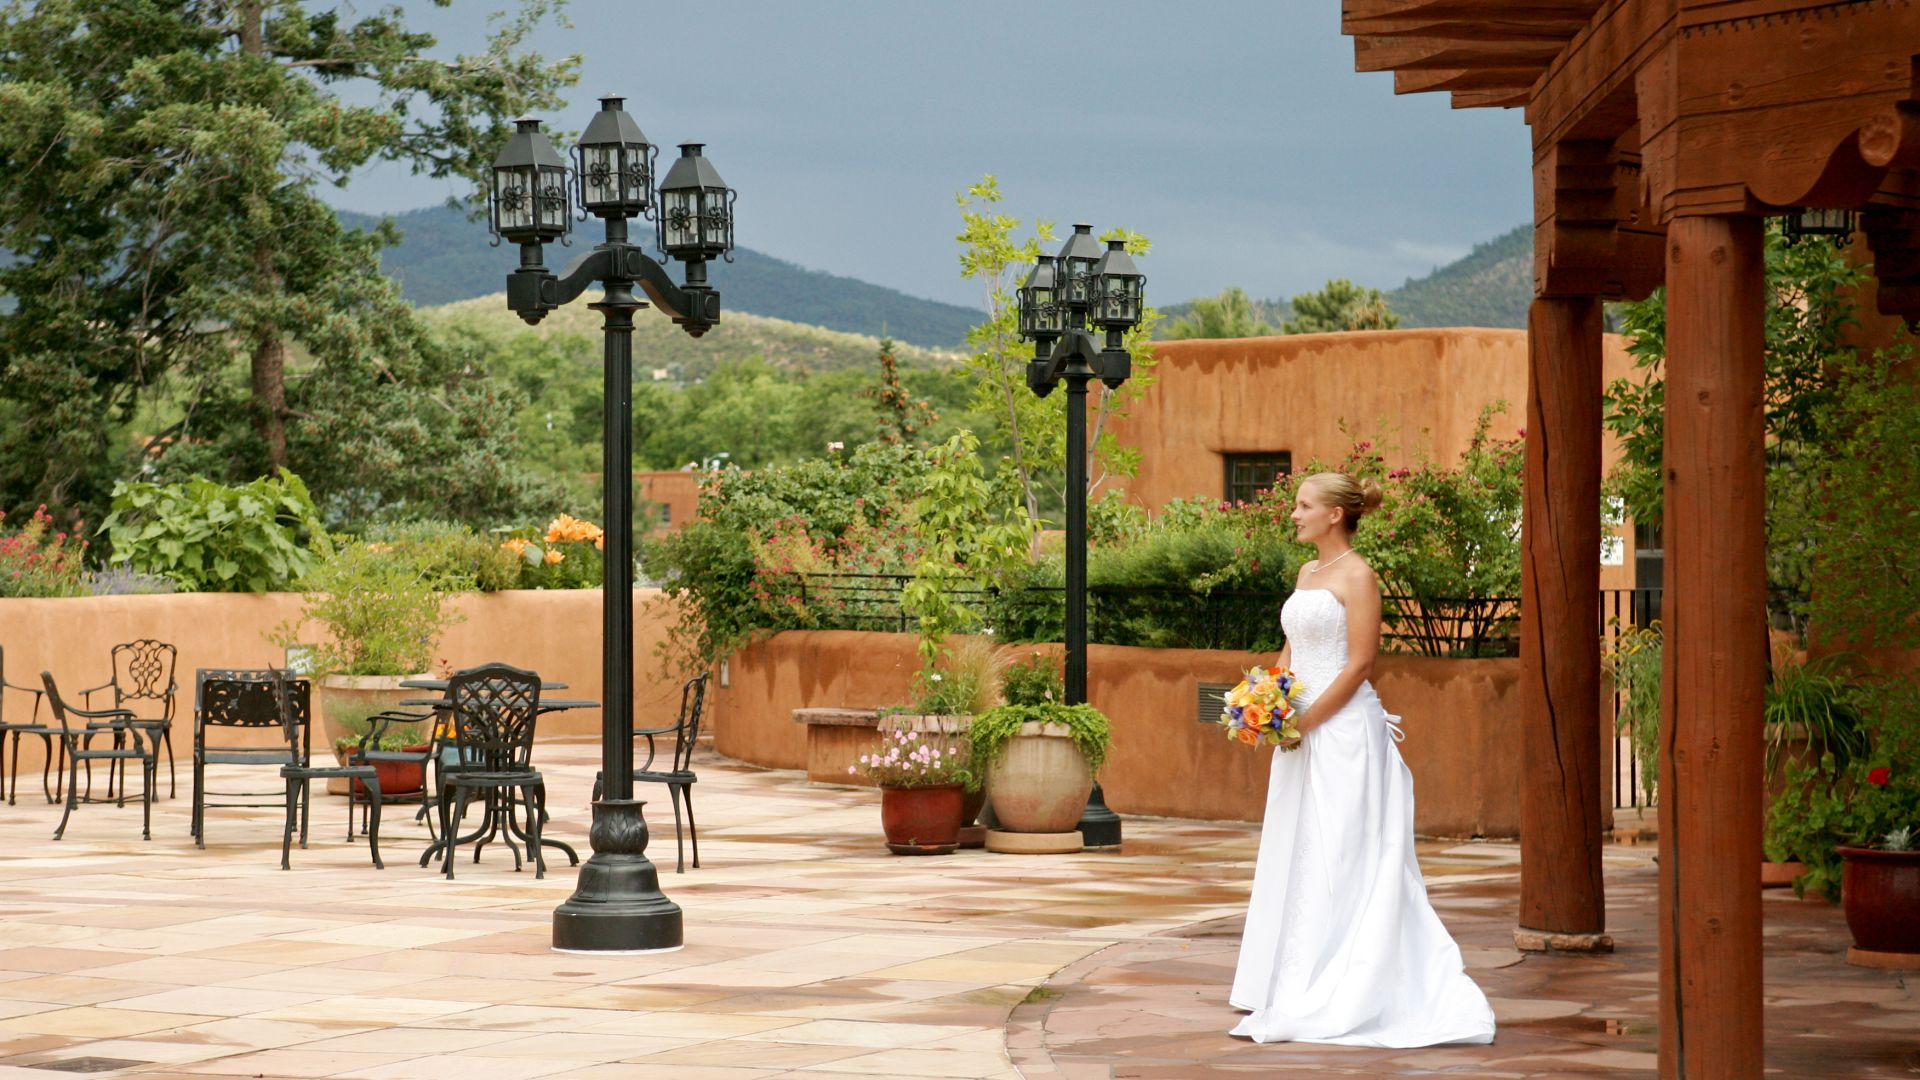 Outdoor Wedding Venue Santa Fe Nm La Fonda On The Plaza